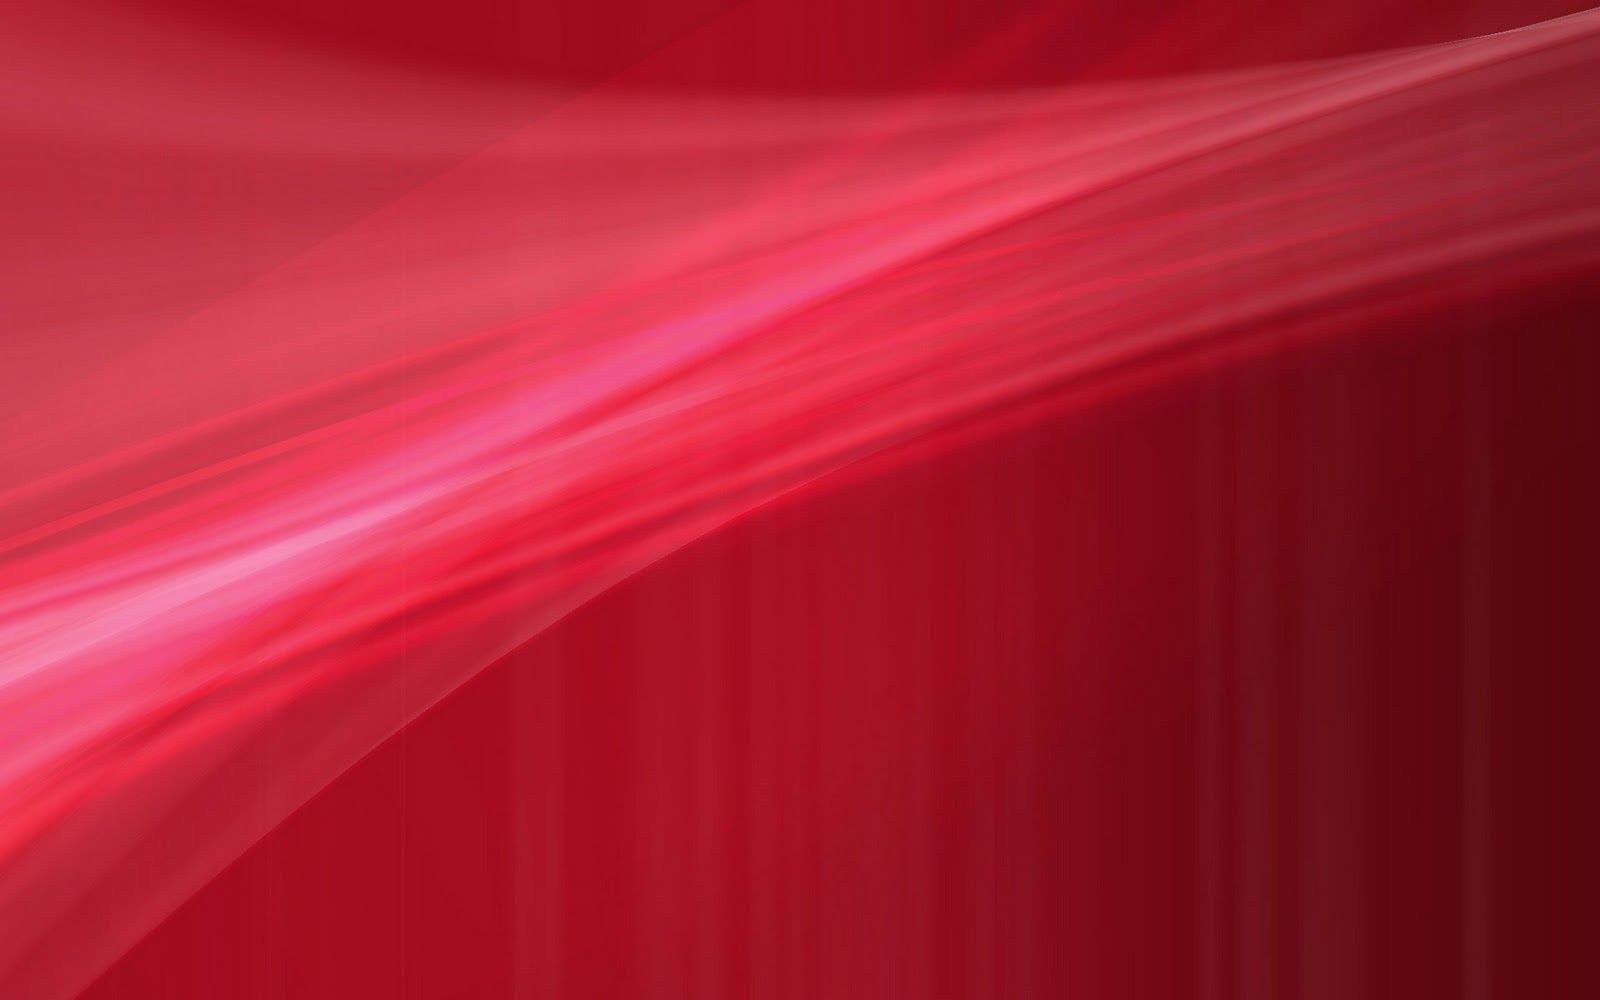 Red The Best Top Desktop Red Wallpapers Red Wallpaper Red